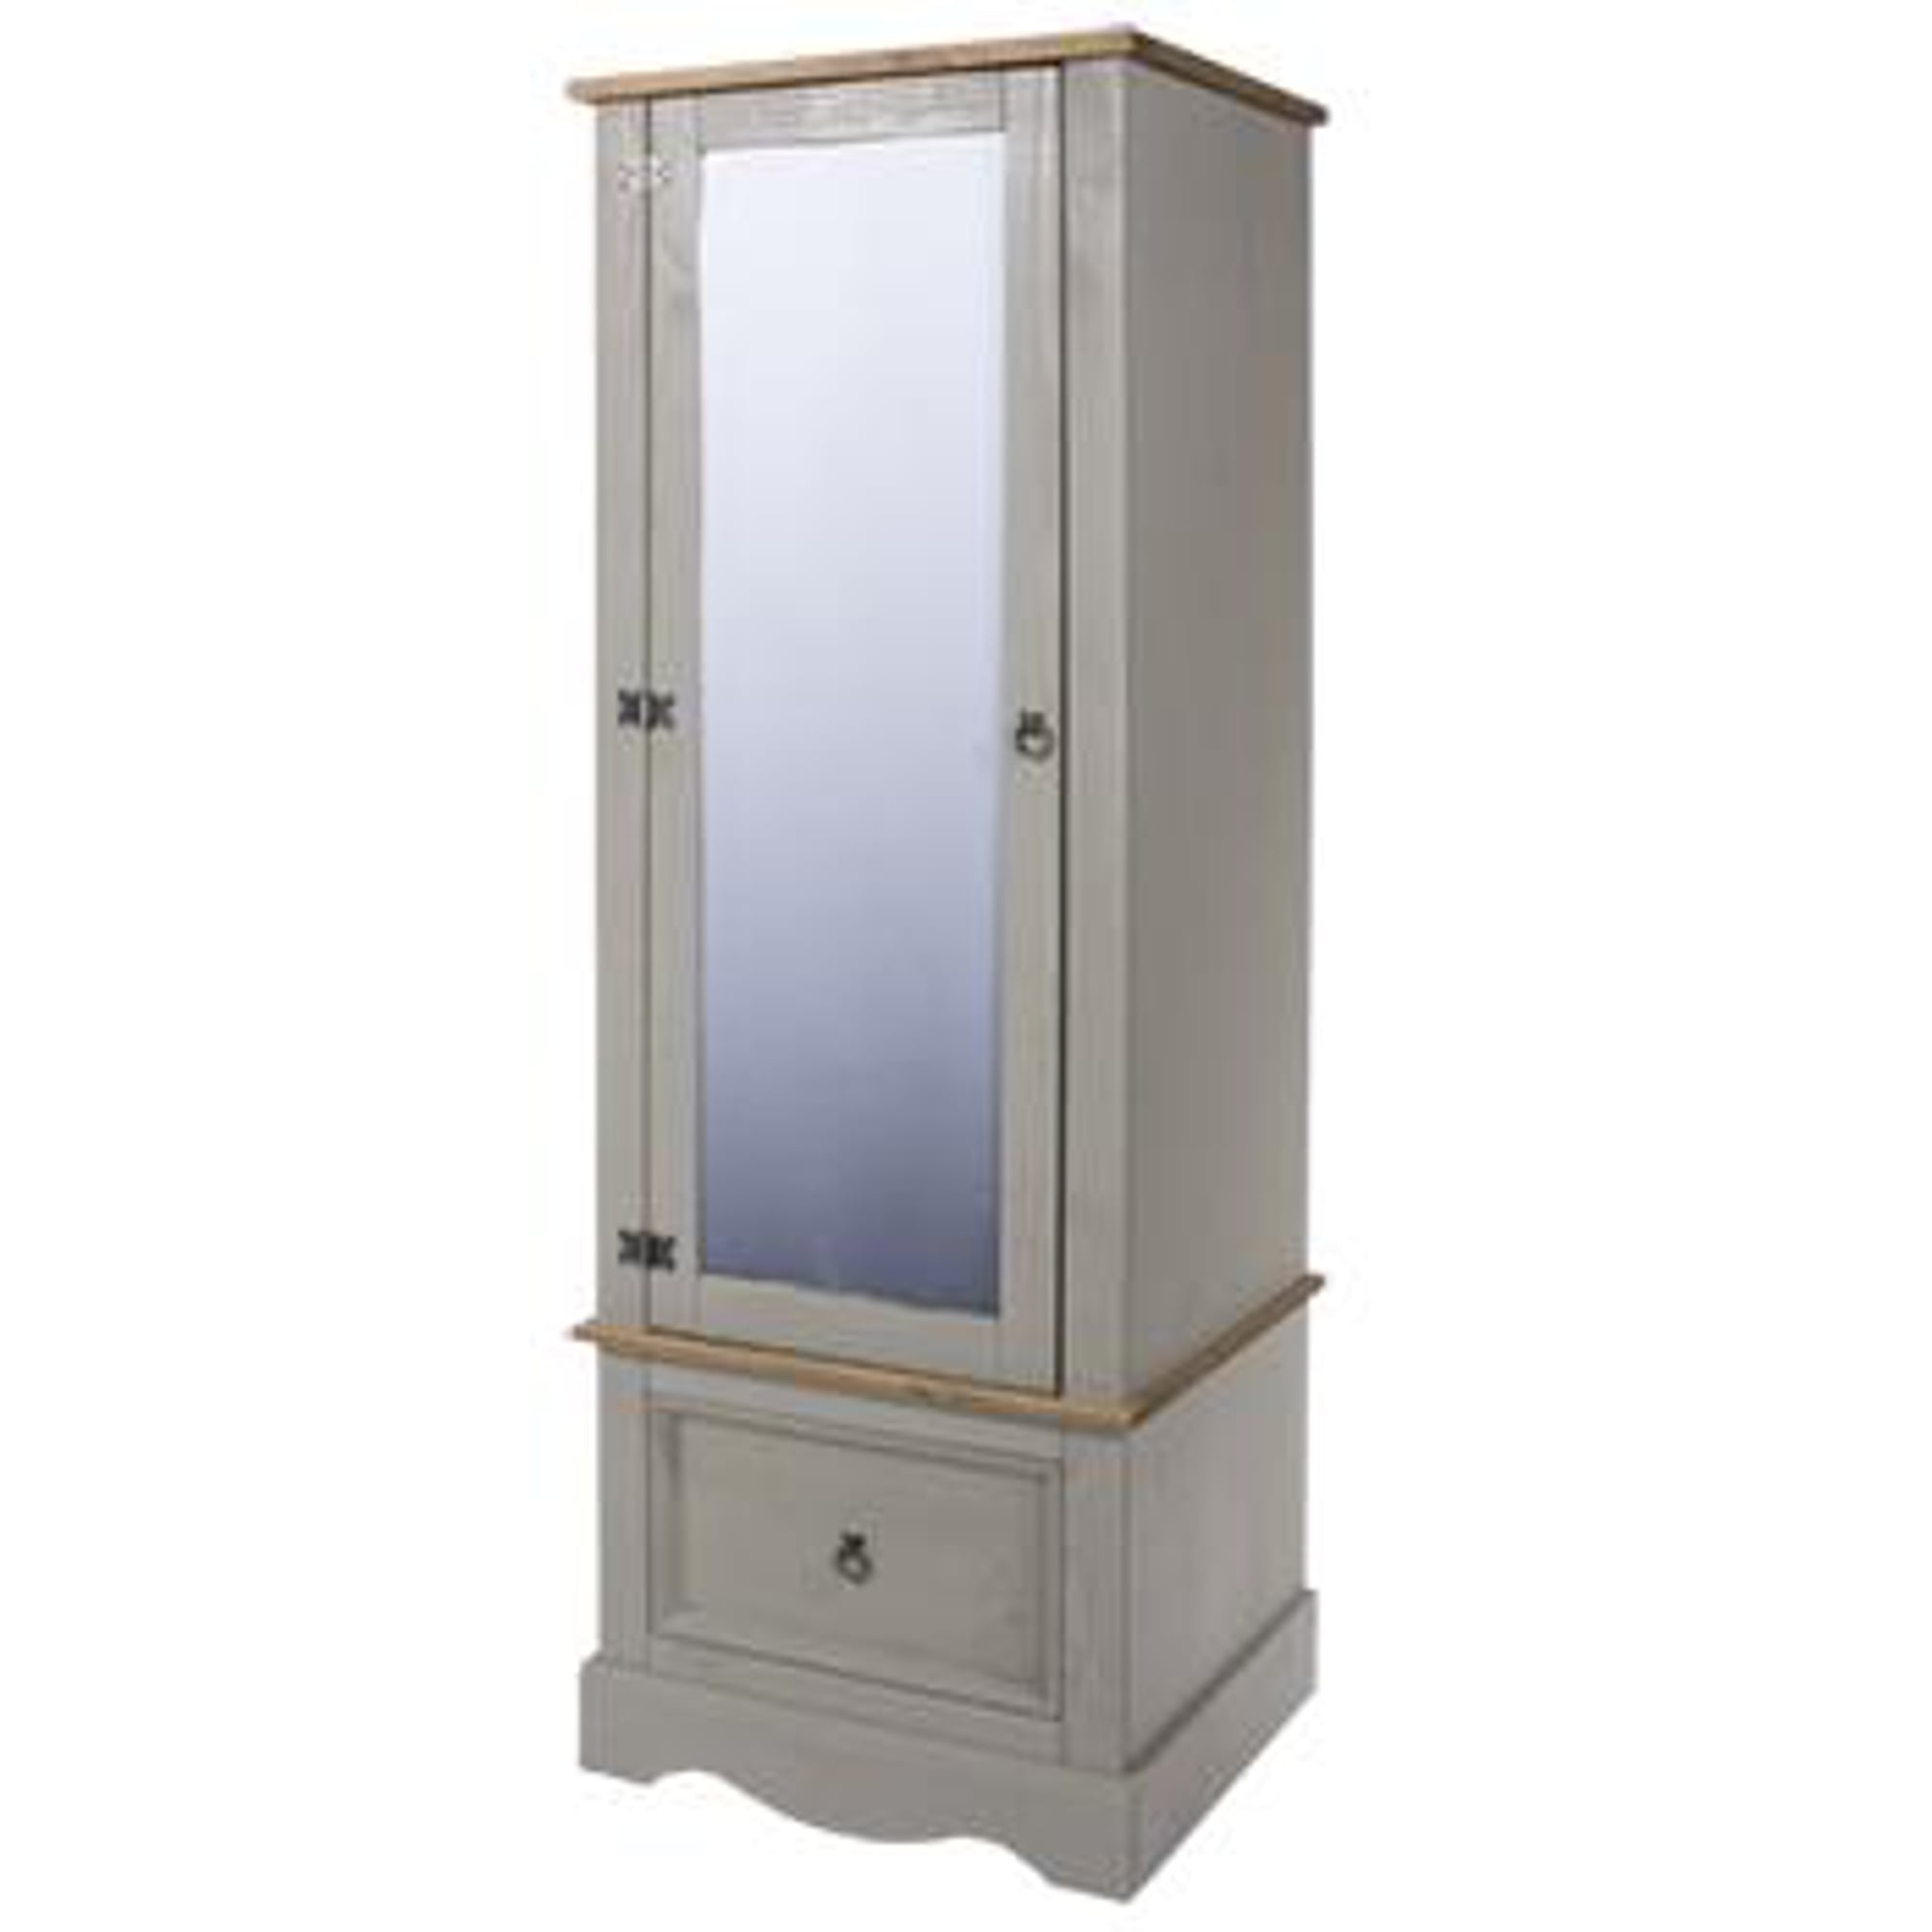 style best accent a to fantastic antique is la armoires rochelle armoire wardrobes addition storages our french mirrored within wardrobe furniture